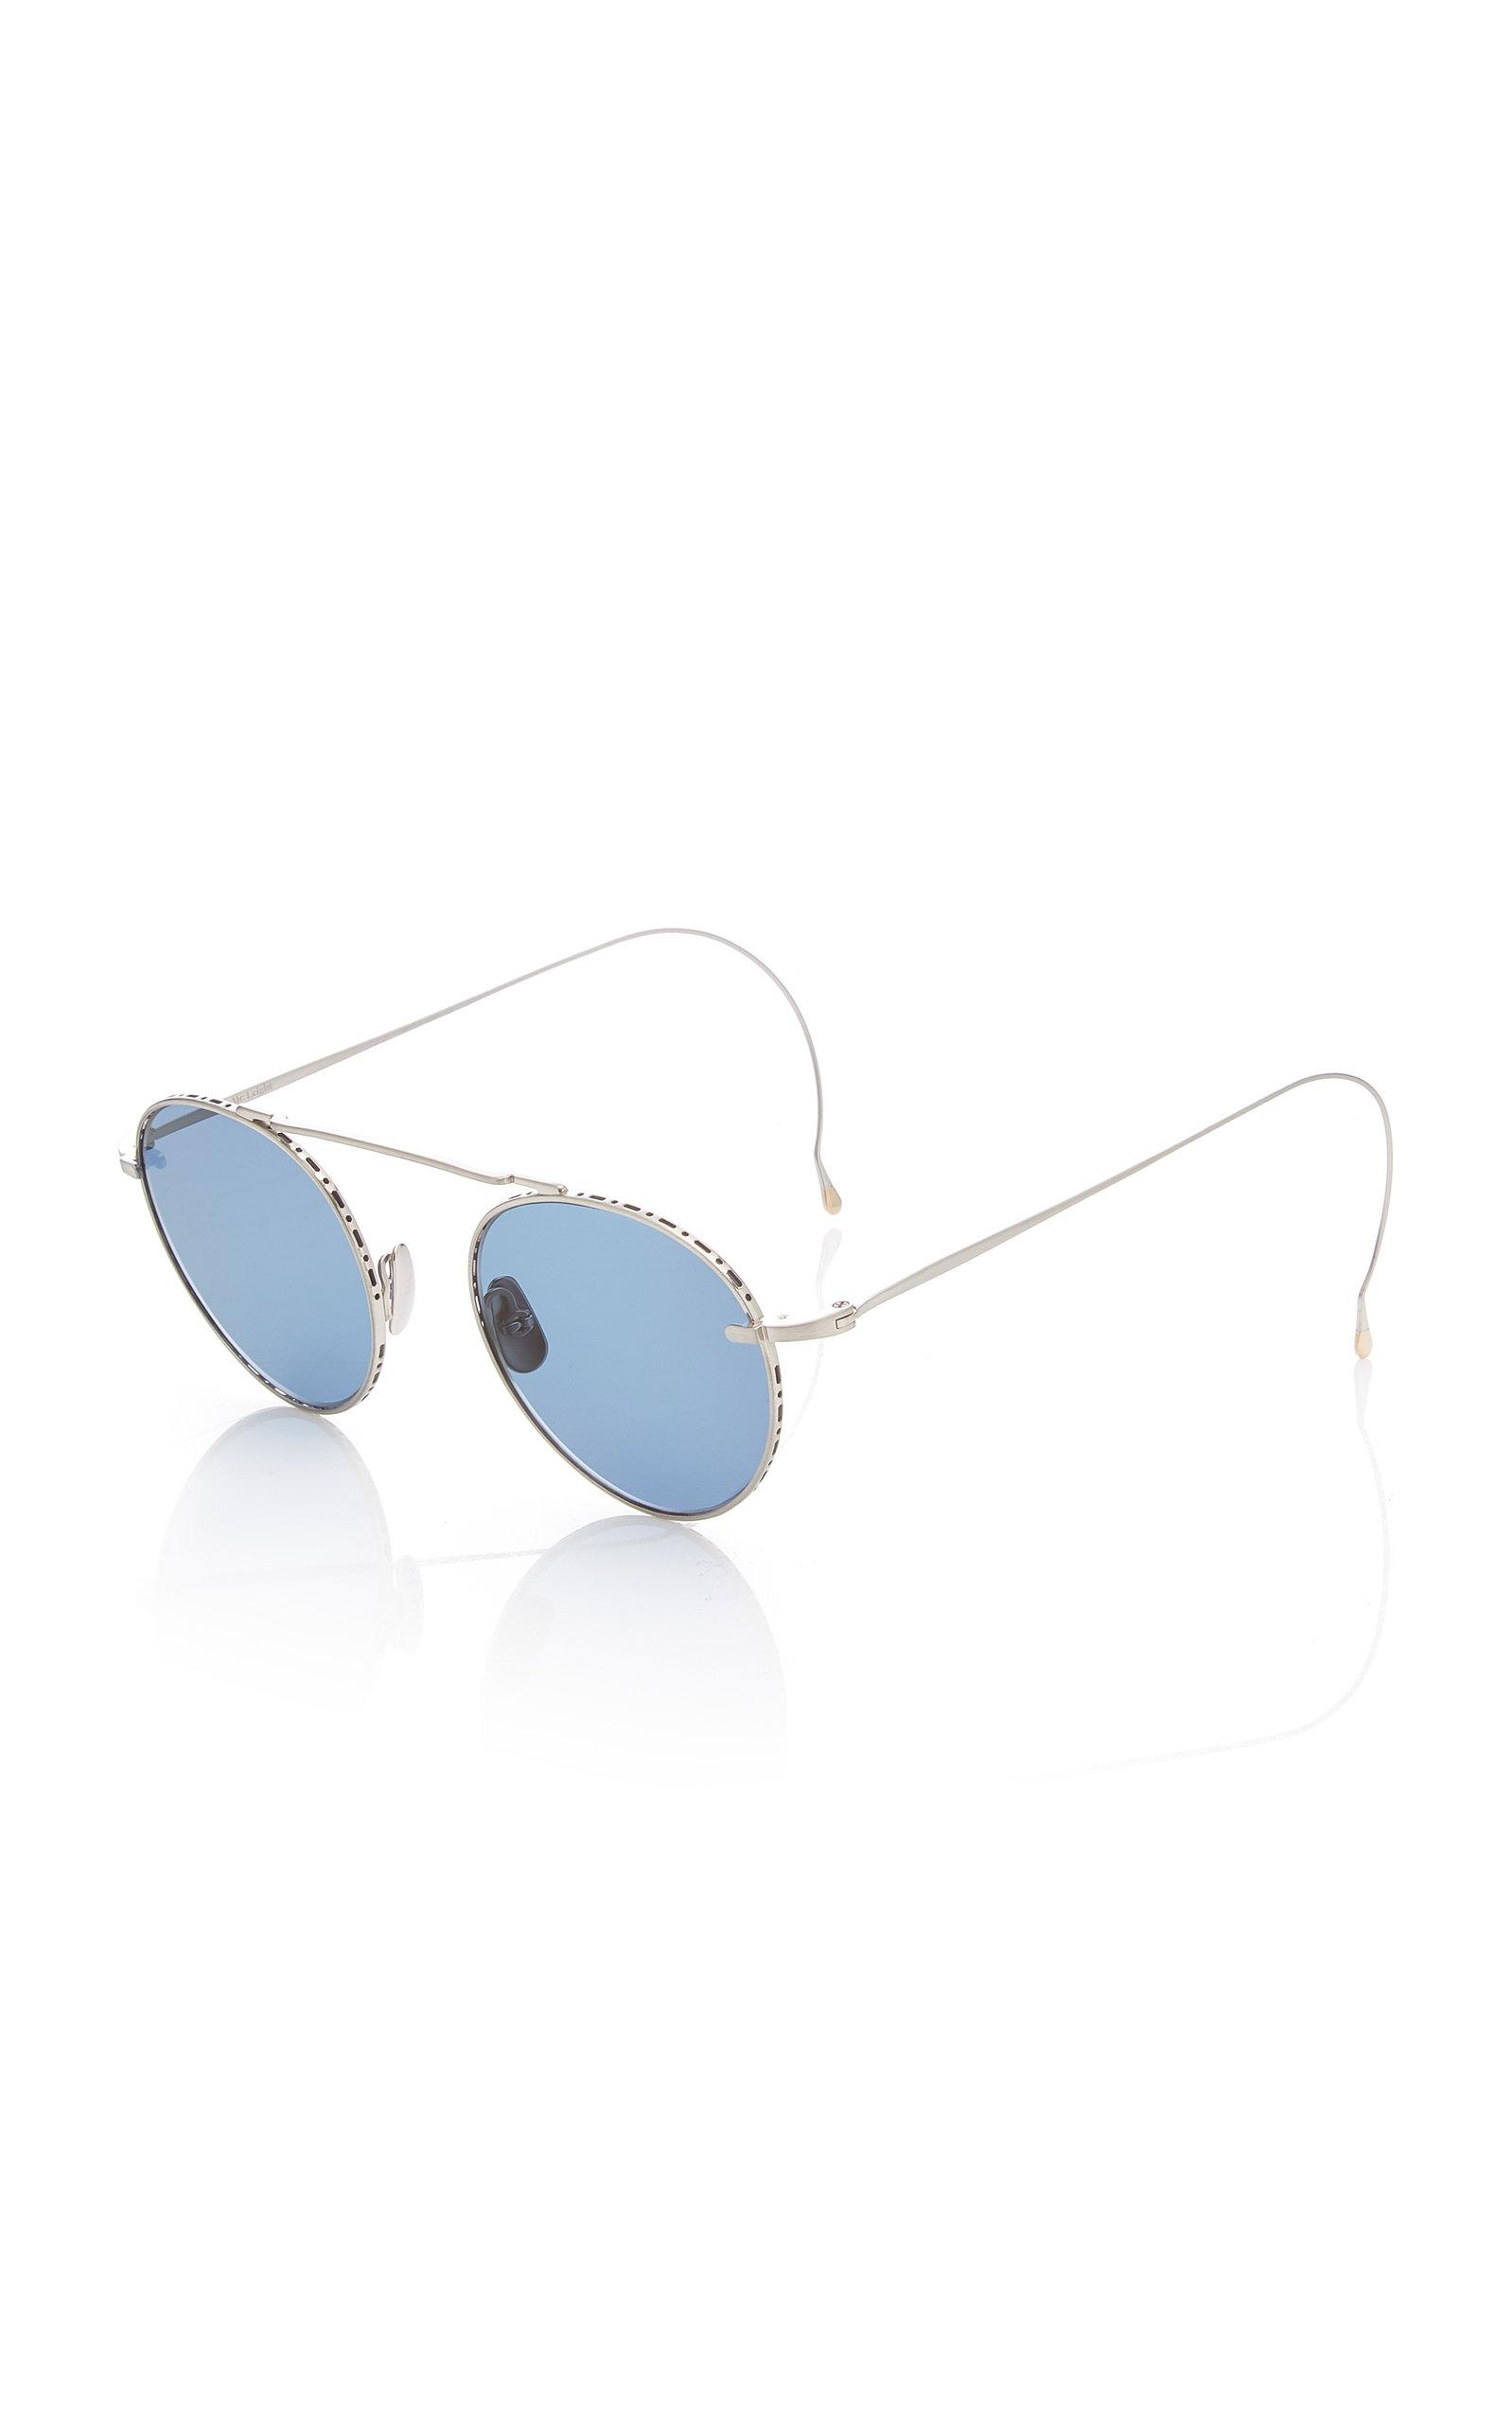 43106a84967 Mr. Leight Rei 49 Aviator-style Titanium Sunglasses in Blue - Lyst